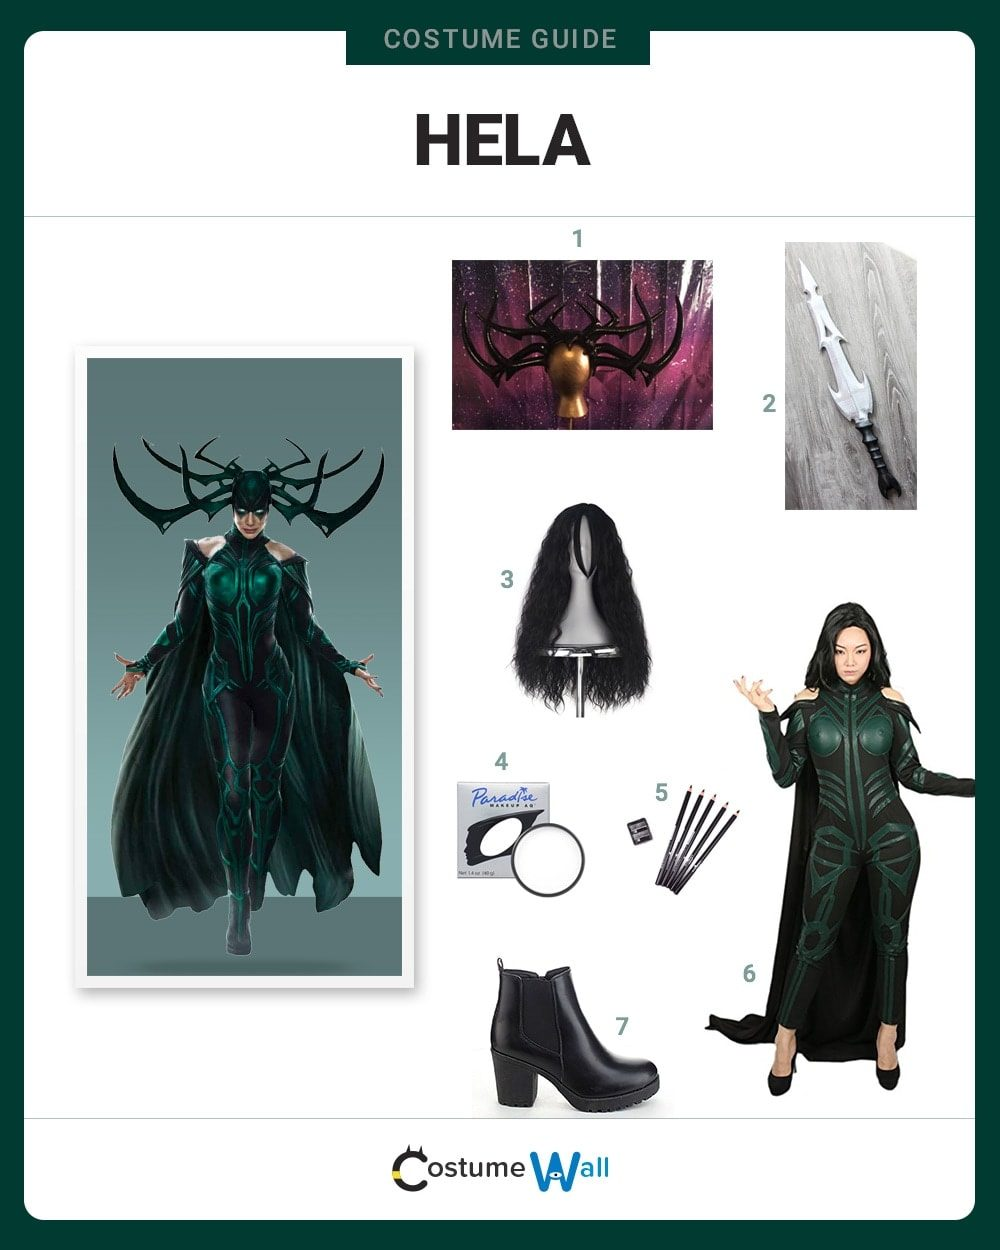 Hela Costume Guide